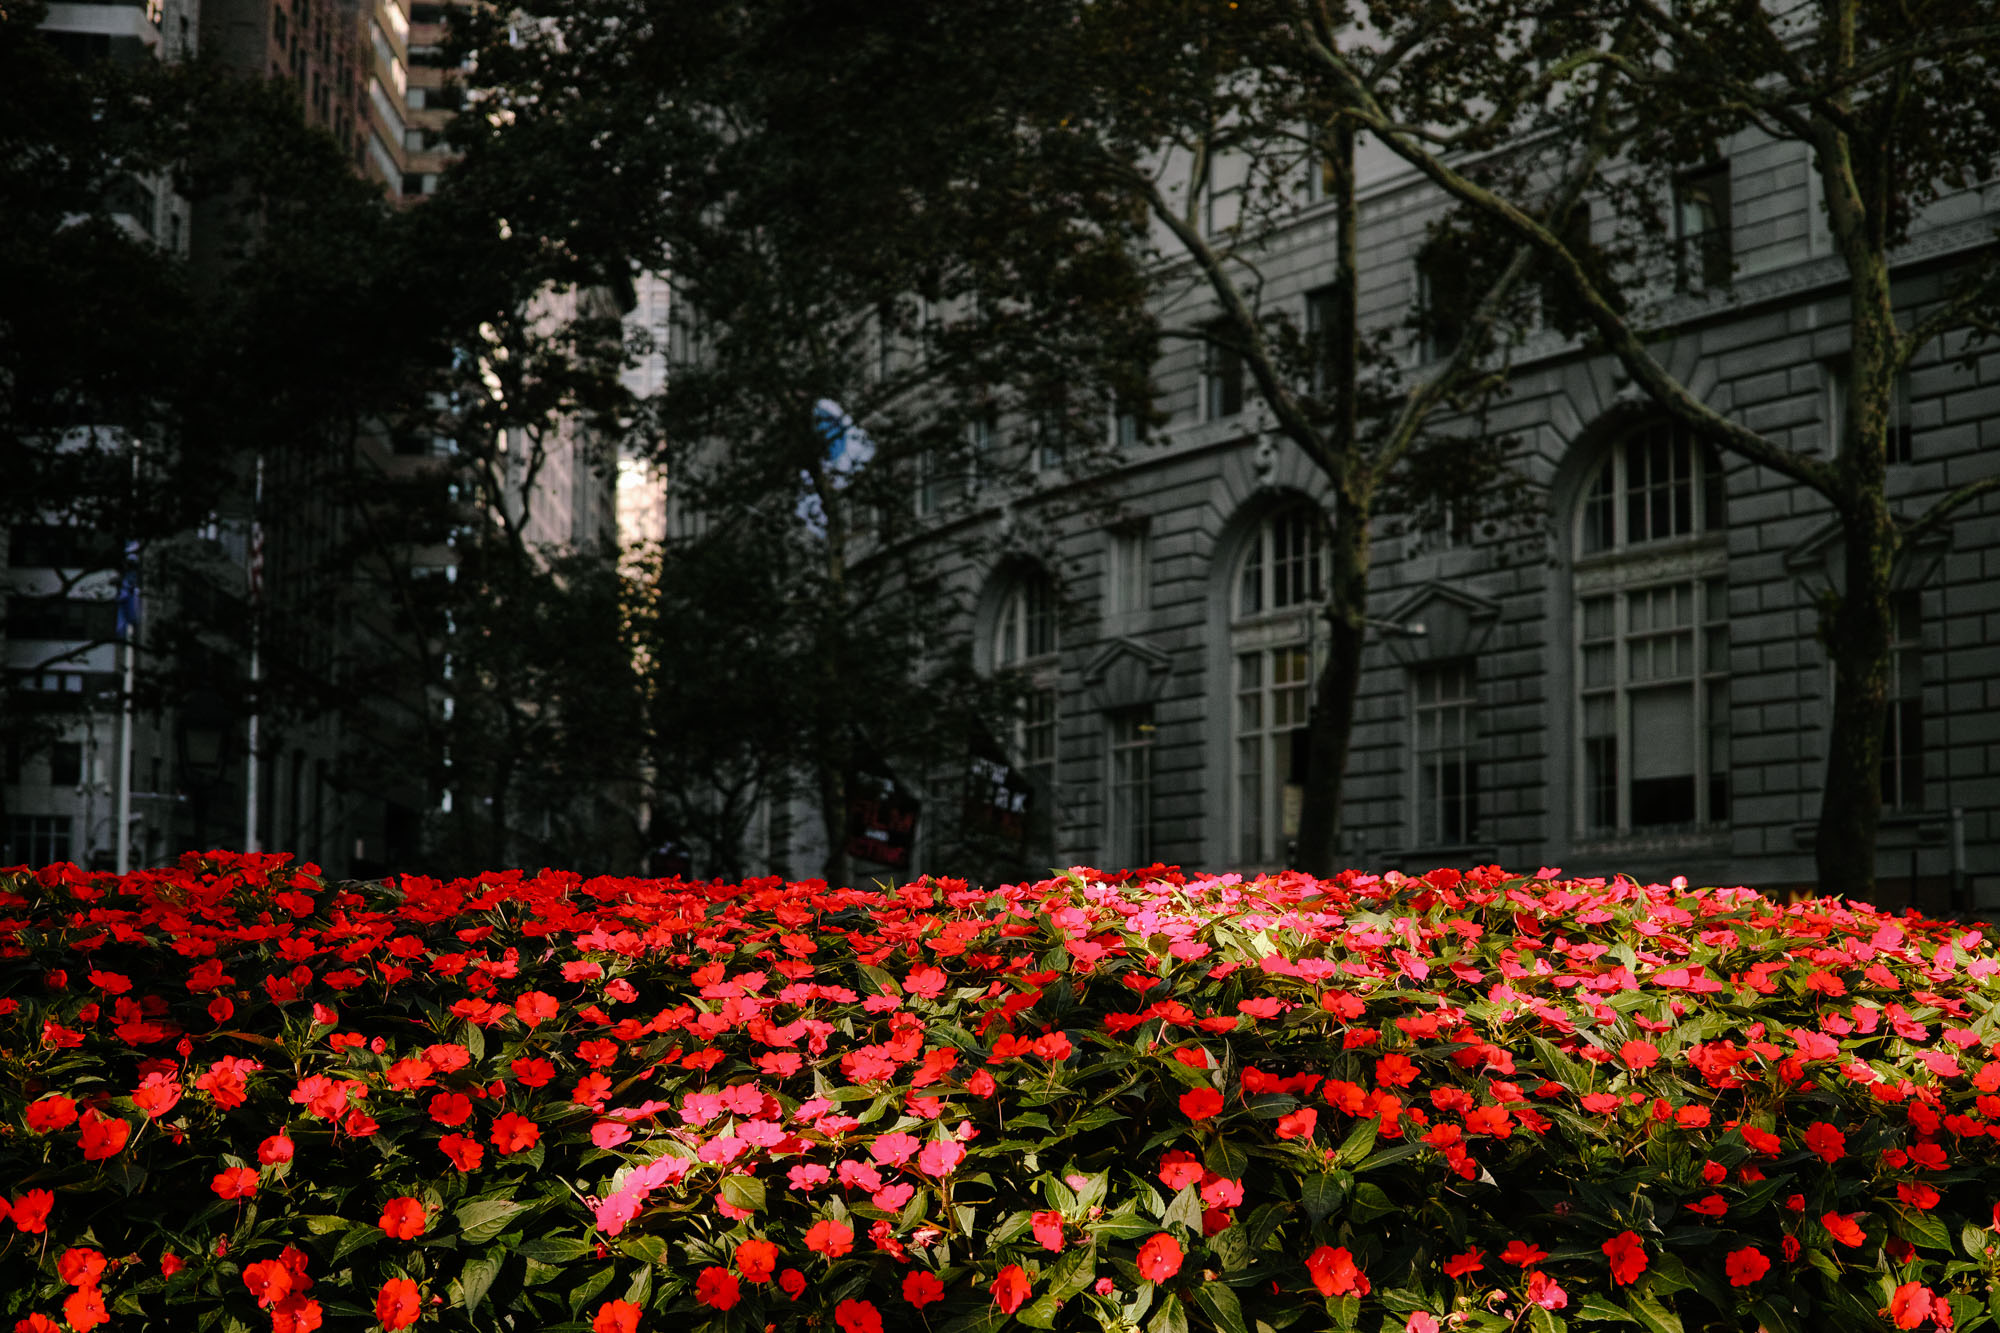 Flowers in the Financial District of Manhattan. Sigma DP2 Merrill, 1/800 @ f/2.8 ISO 250